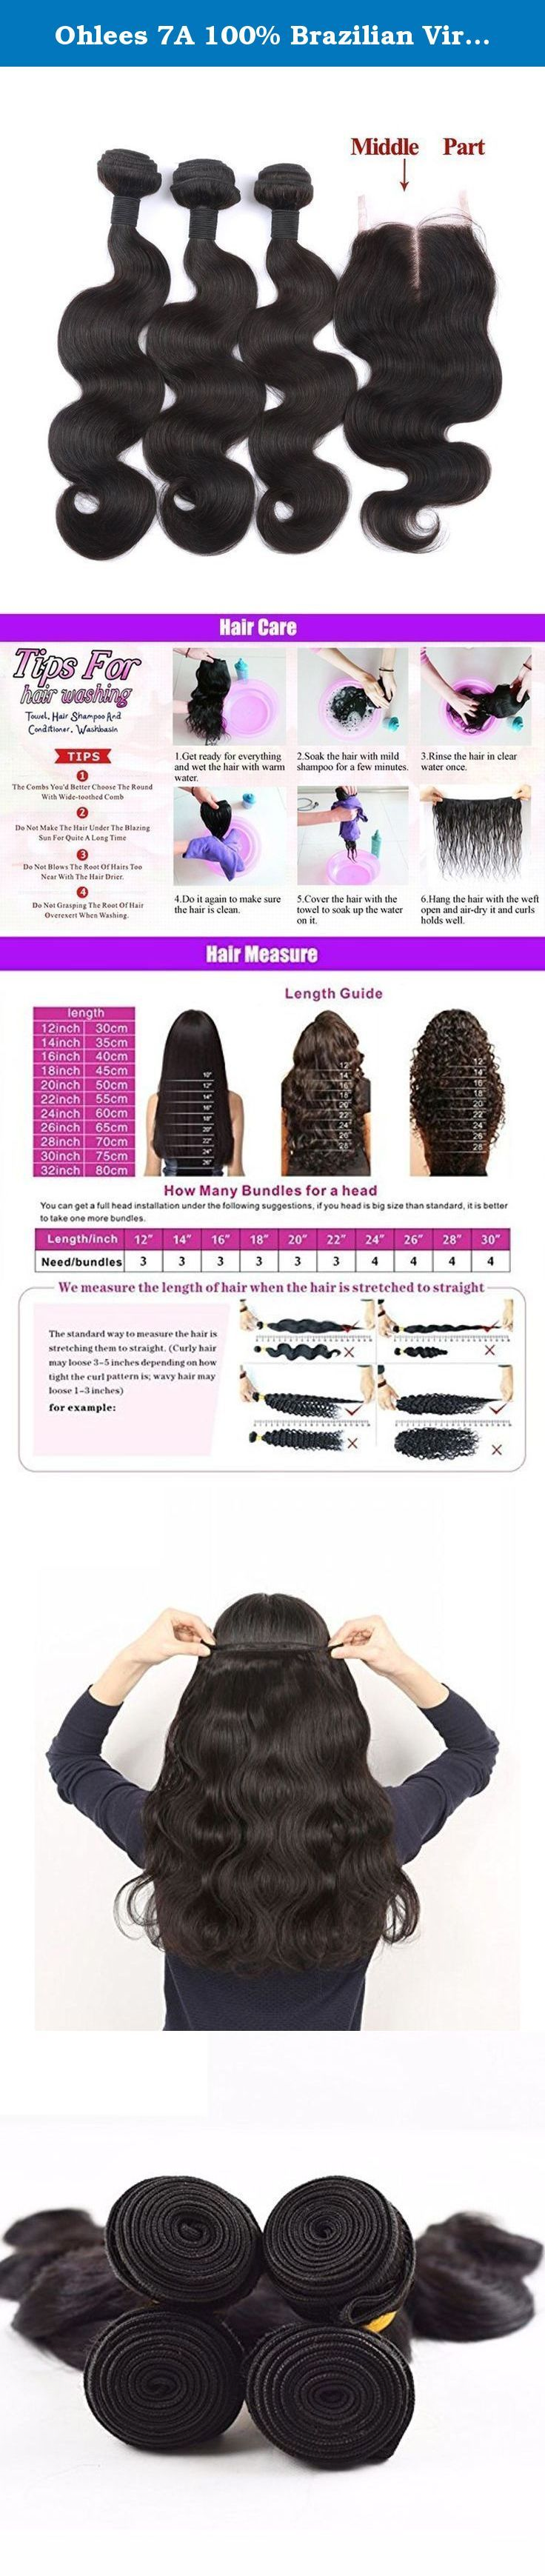 "Ohlees 7A 100% Brazilian Virgin Remy Human Hair Weft Natural Color Body Wave Weave Extensions 3 Bundles +Middle Part Lace Closure (44) 1Bundles (14""16""18""+10""). 一、How to care the hair ? Improper wash or process probably make the hair dry, easy to fall down or tangle. How you care for your extension will be the ultimate determining factor. Please refer to local professional hairdresser for professional tip. The hair can last at least several month in proper way. 1) wash it by the most mild..."